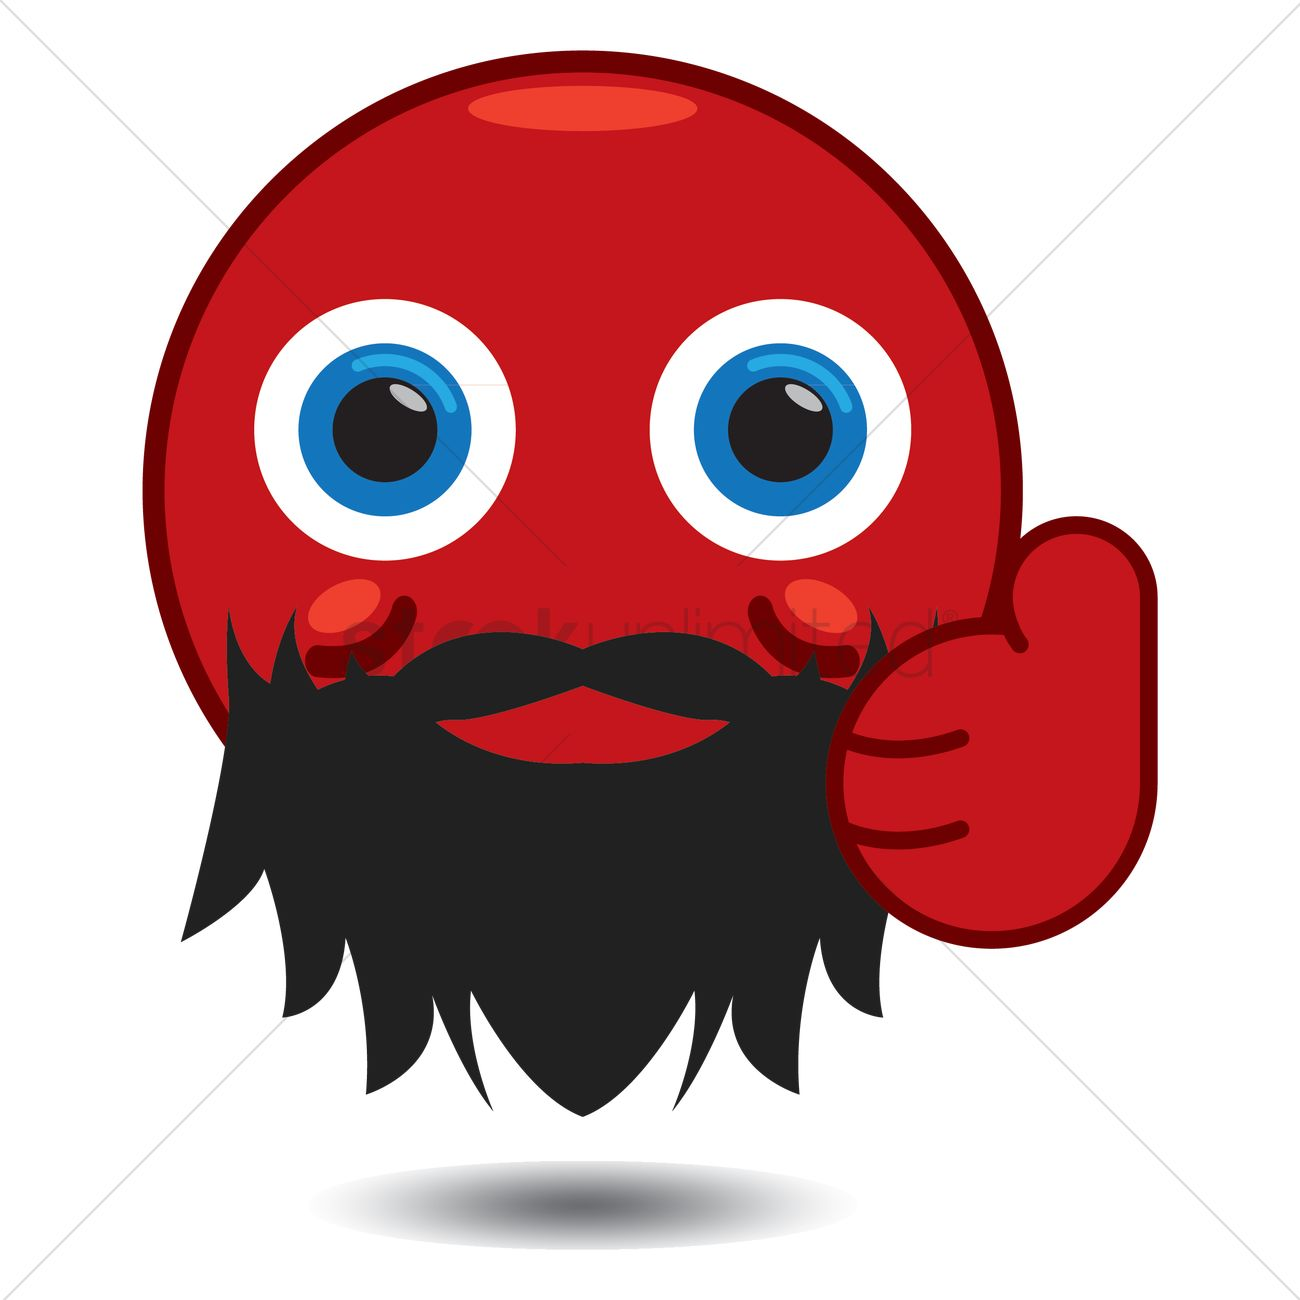 1300x1300 Free Smiley With Beard Showing Thumbs Up Vector Image